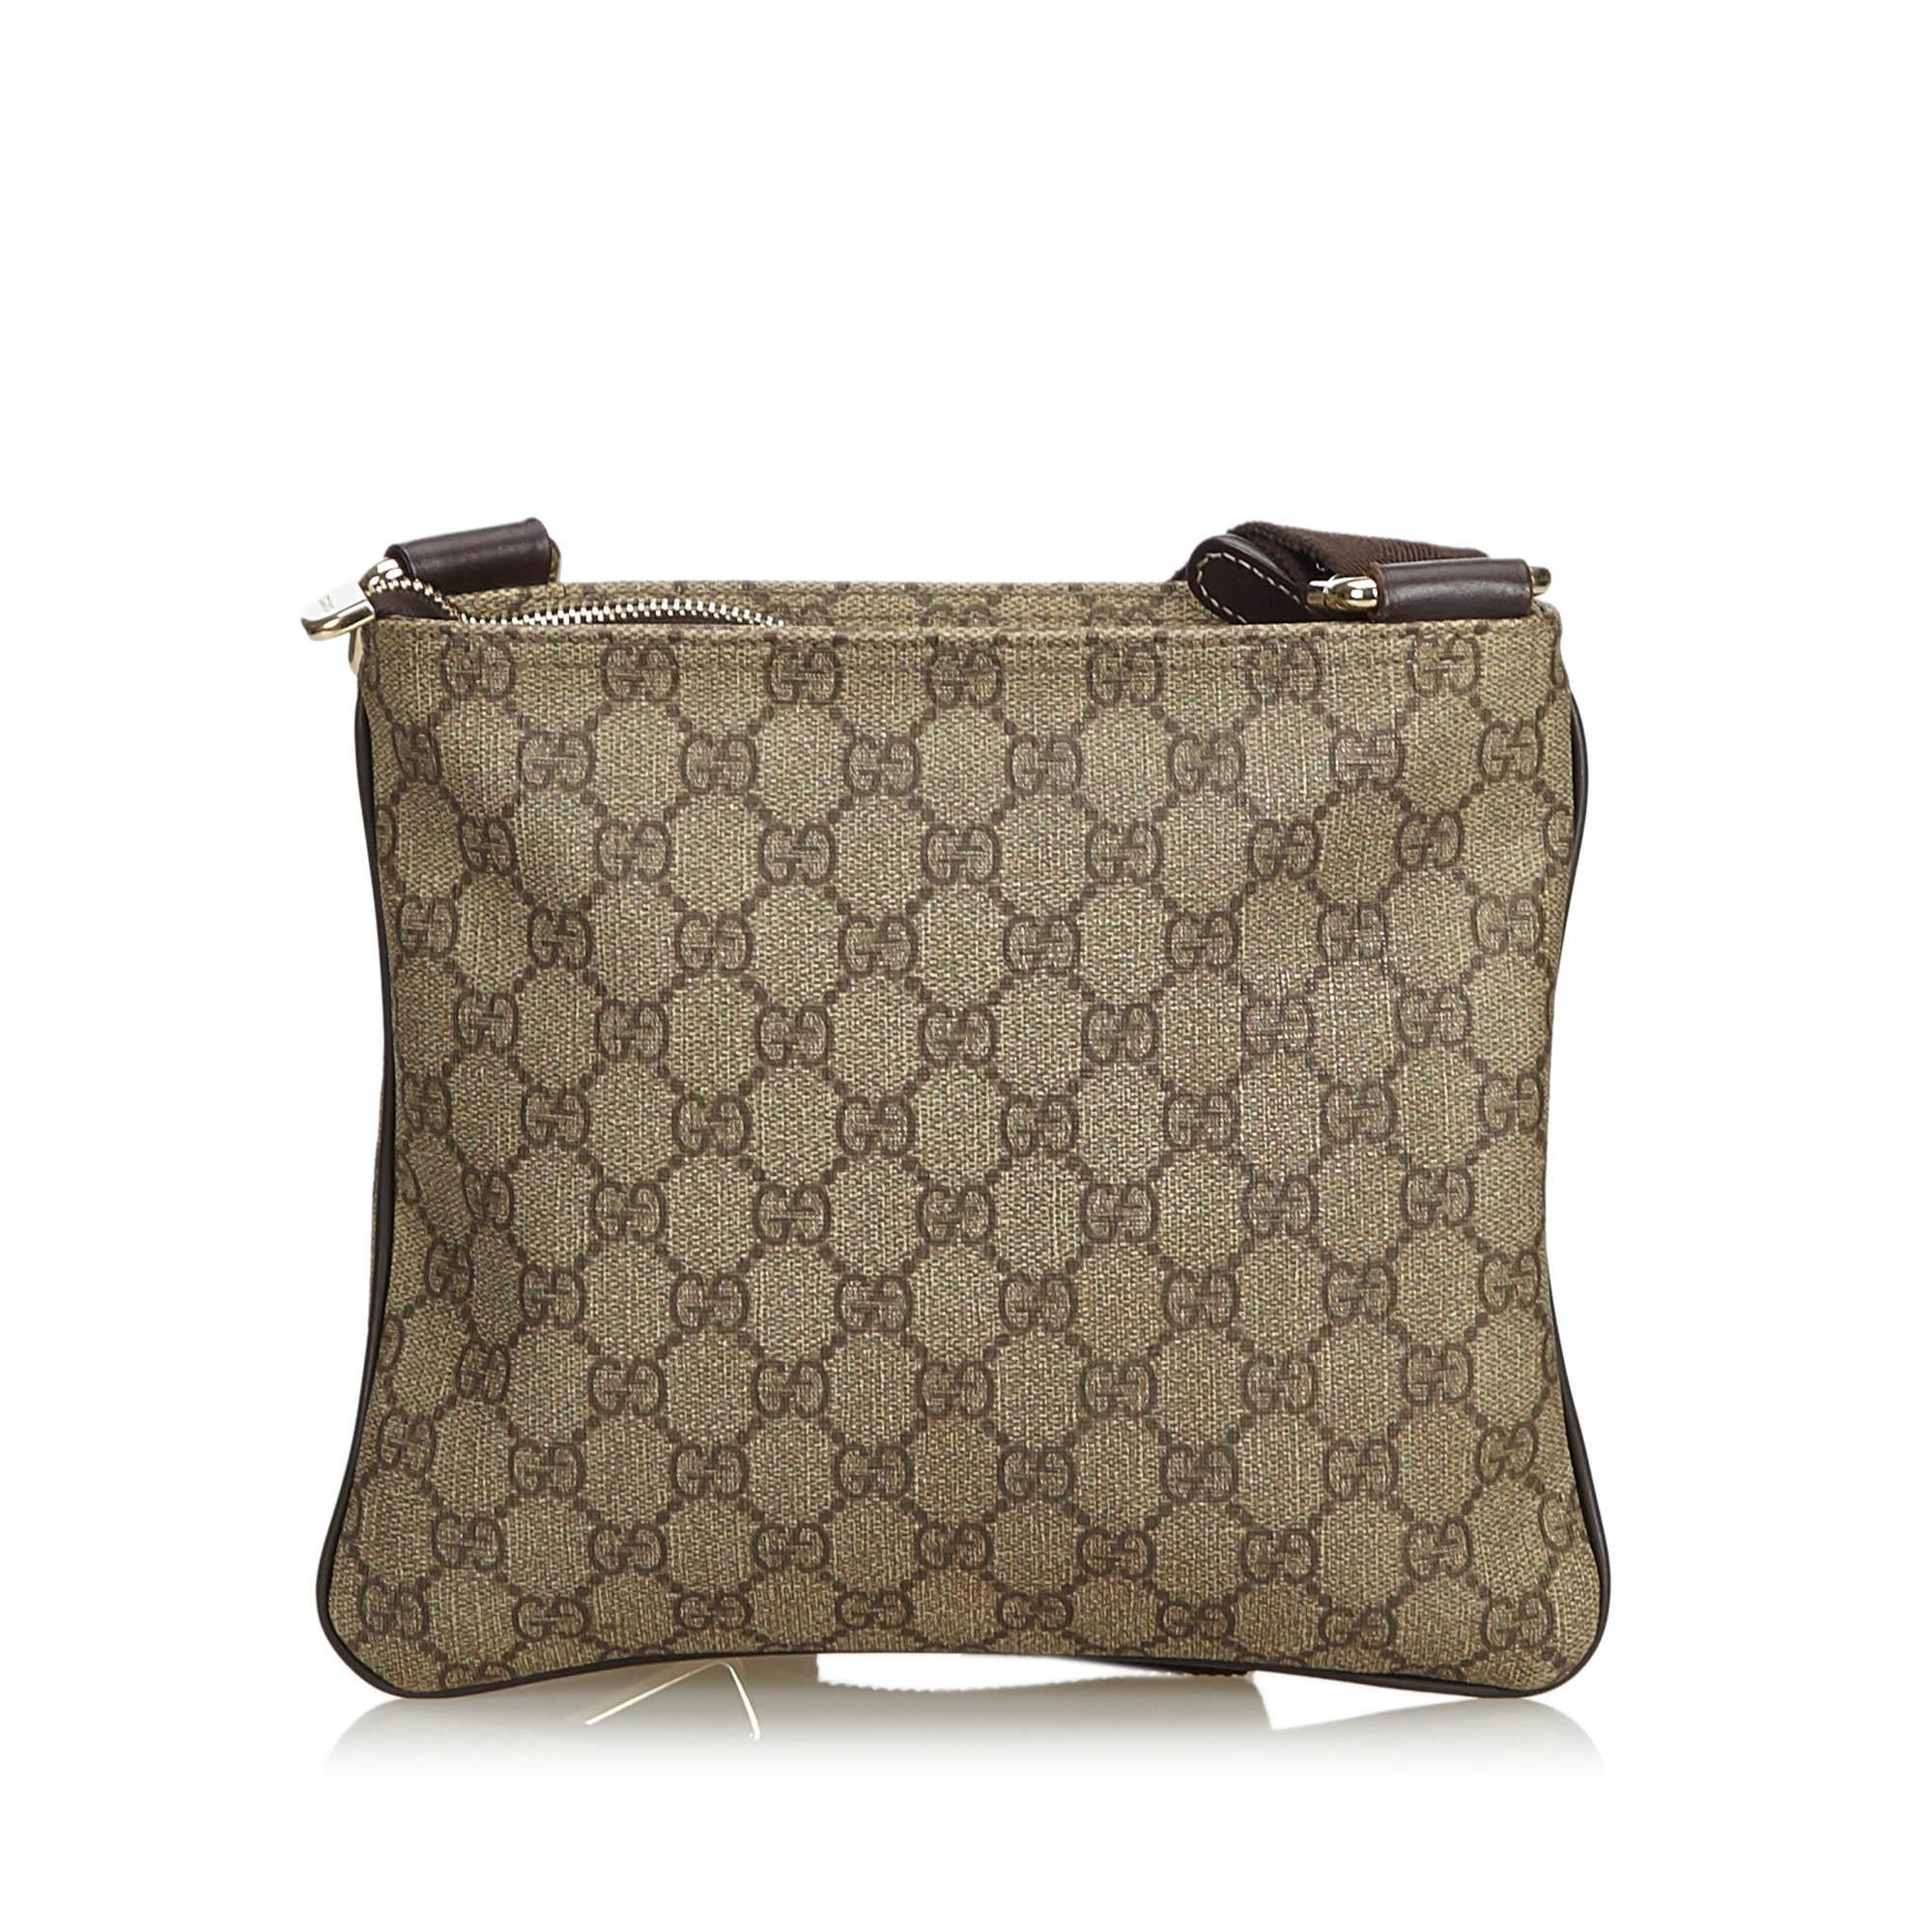 8c238953d Gucci Brown Light Brown Coated Canvas Fabric GG Supreme Crossbody Bag Italy  at 1stdibs